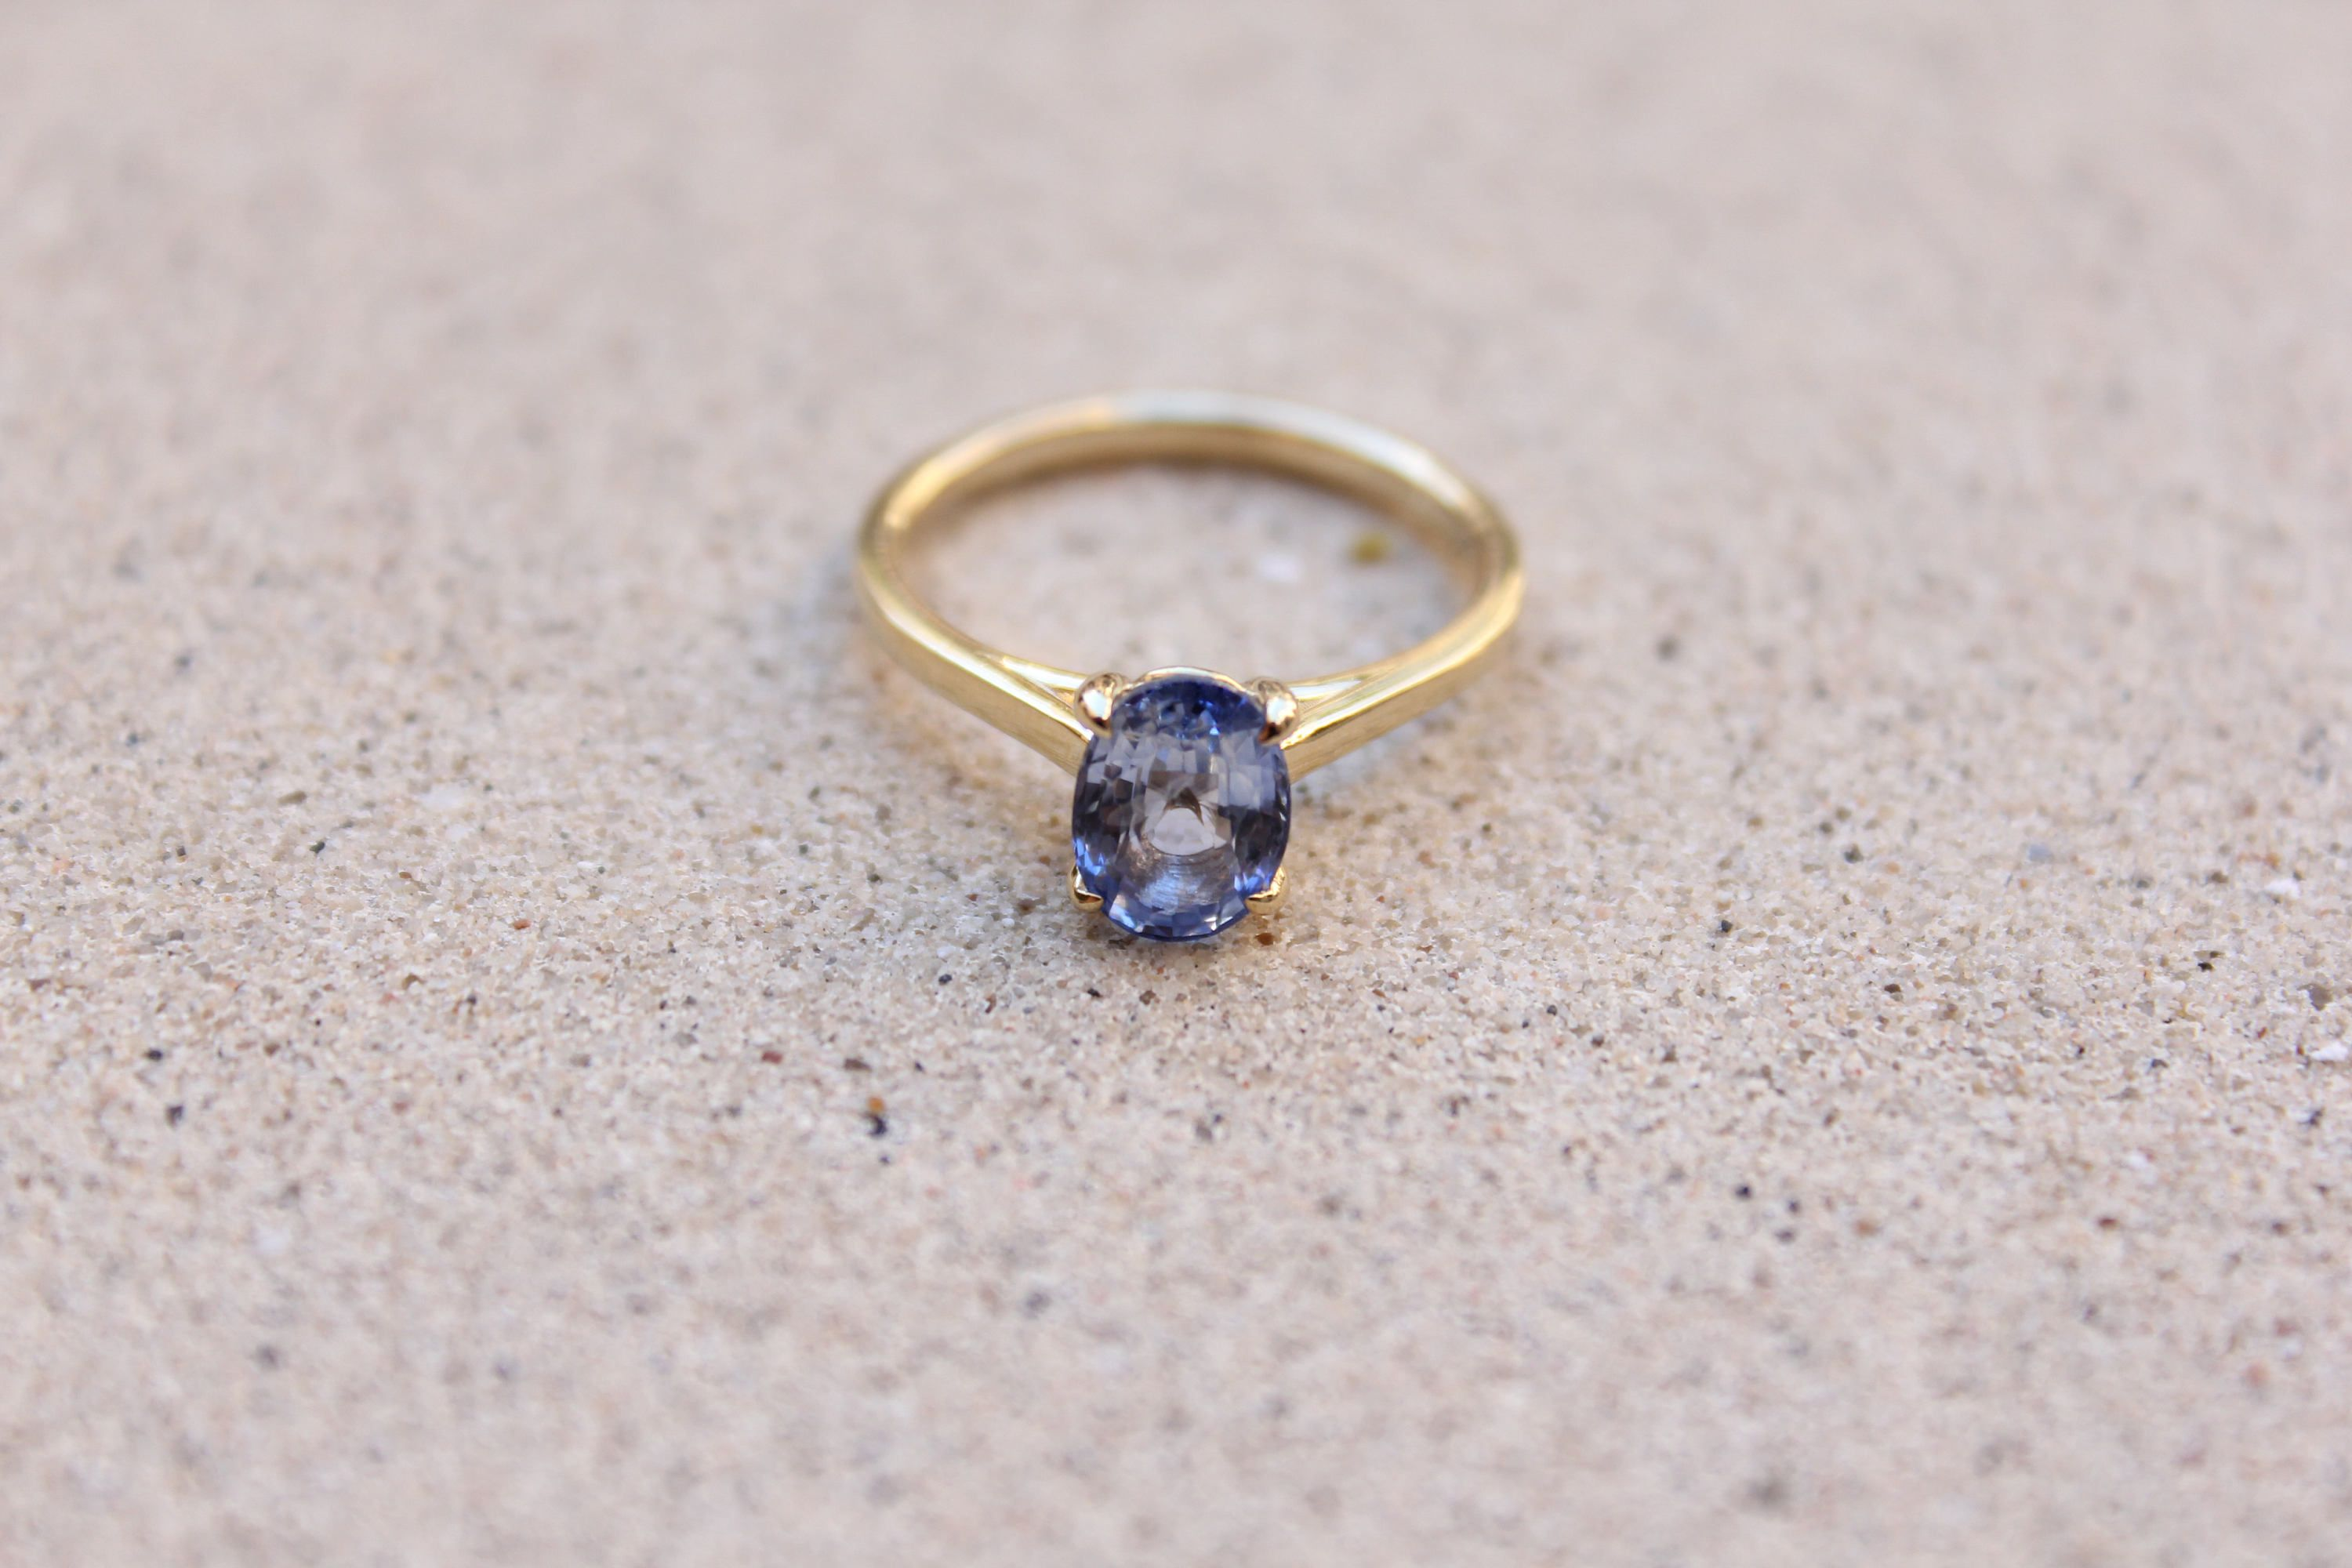 set online solitaire sapphires yellow by oval brisbane jewellery gold grain diamonds ring sapphire product north river